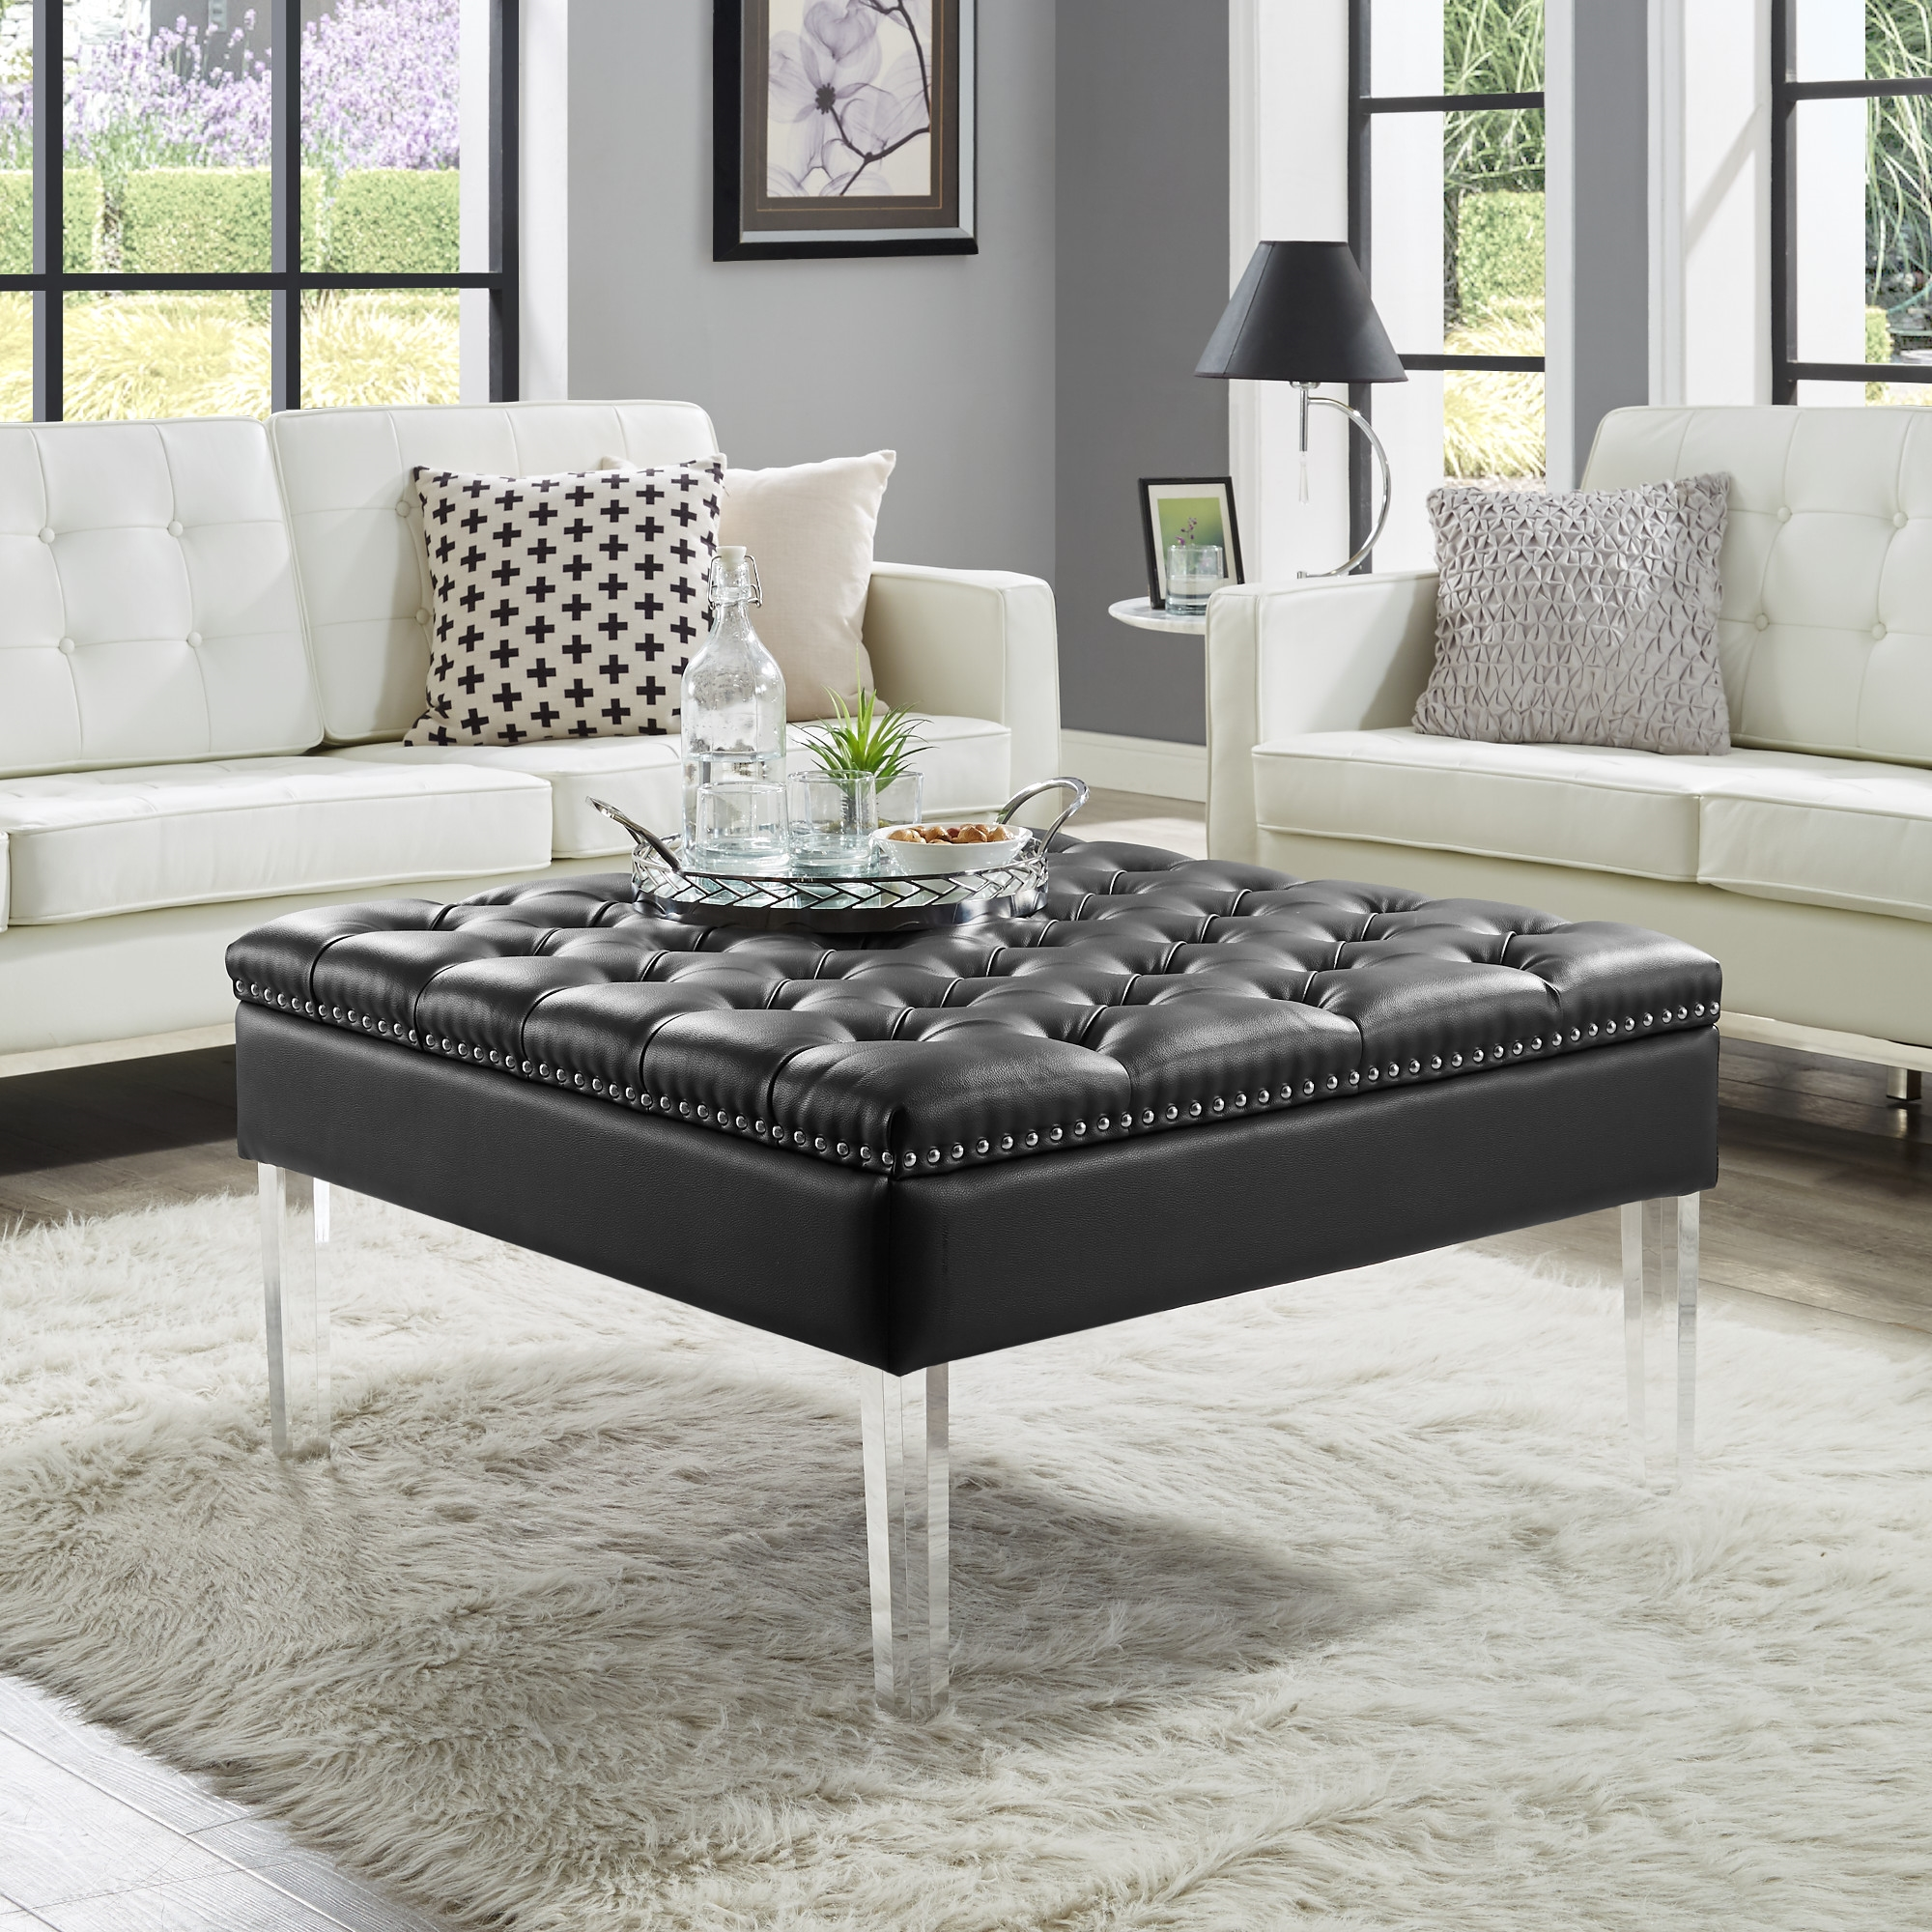 Inspired Home Black PU Leather Ottoman Oversized Button Tufted Silver Nailhead Trim